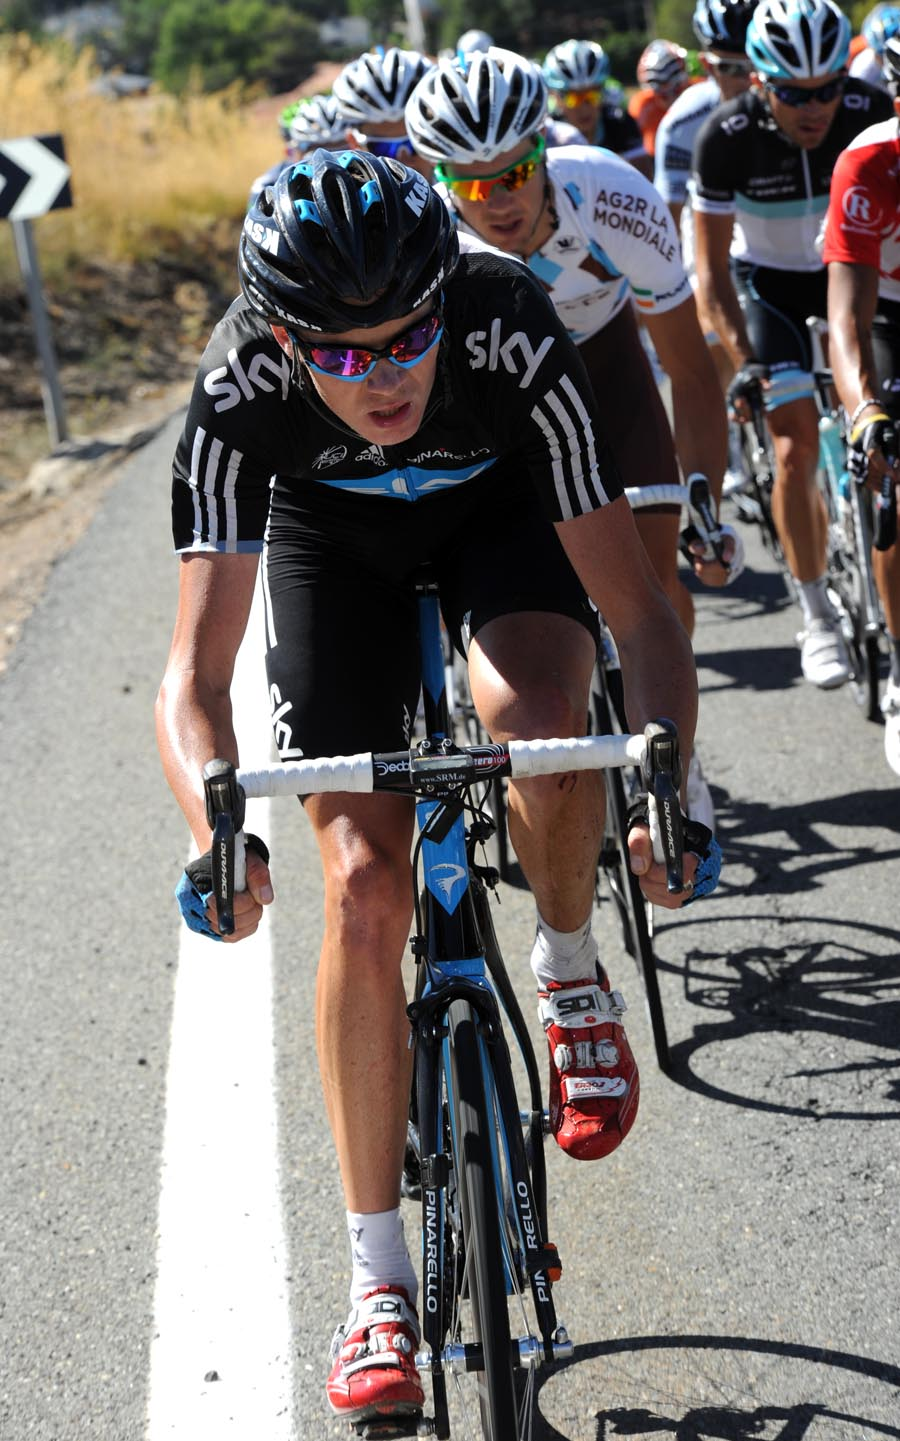 Chris Froome, Vuelta a Espana 2011, stage eight